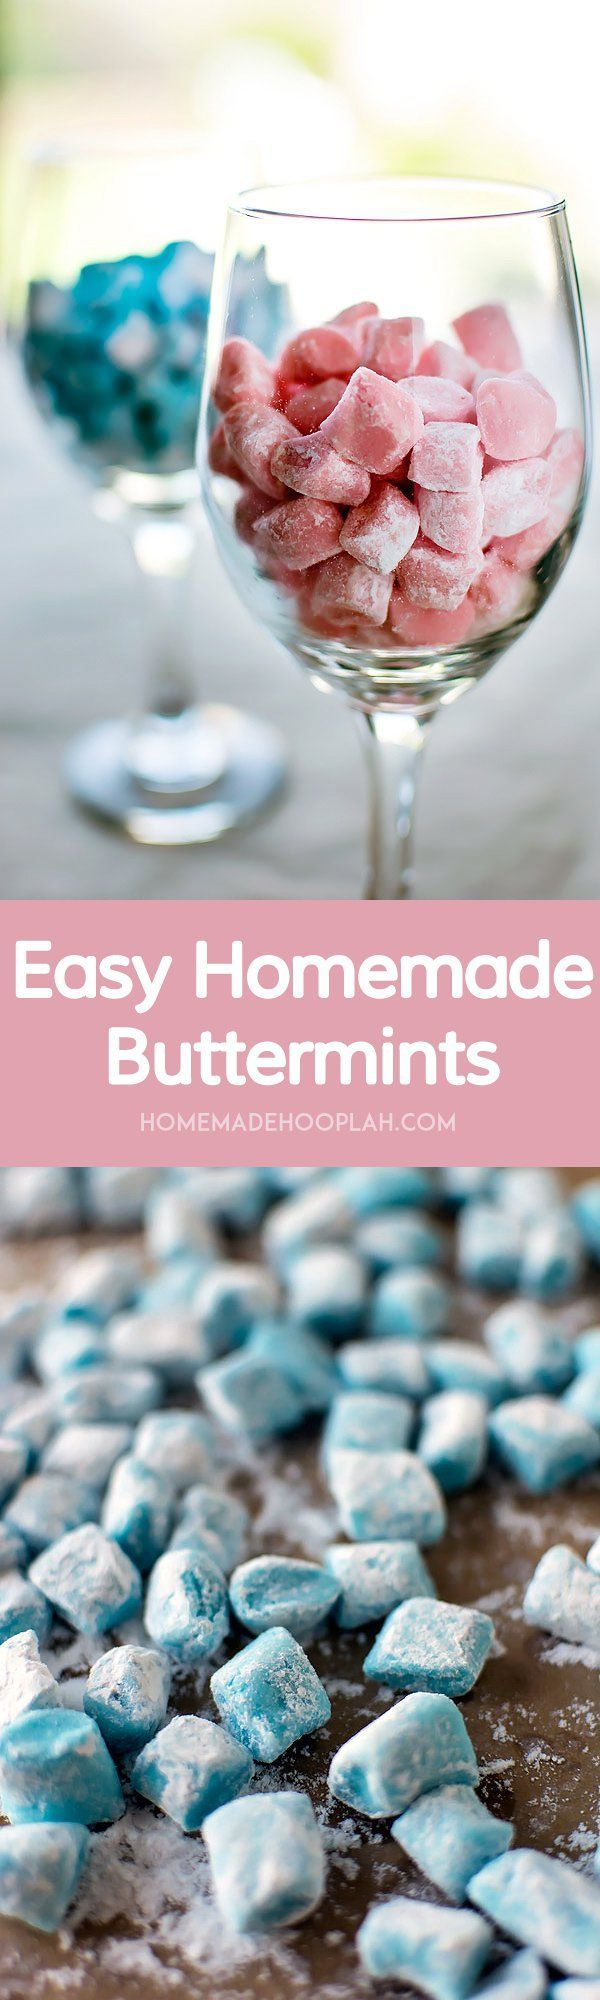 Easy Homemade Buttermints! Melt-in-your-mouth buttermints that are surprisingly easy to make at home. | HomemadeHooplah.com